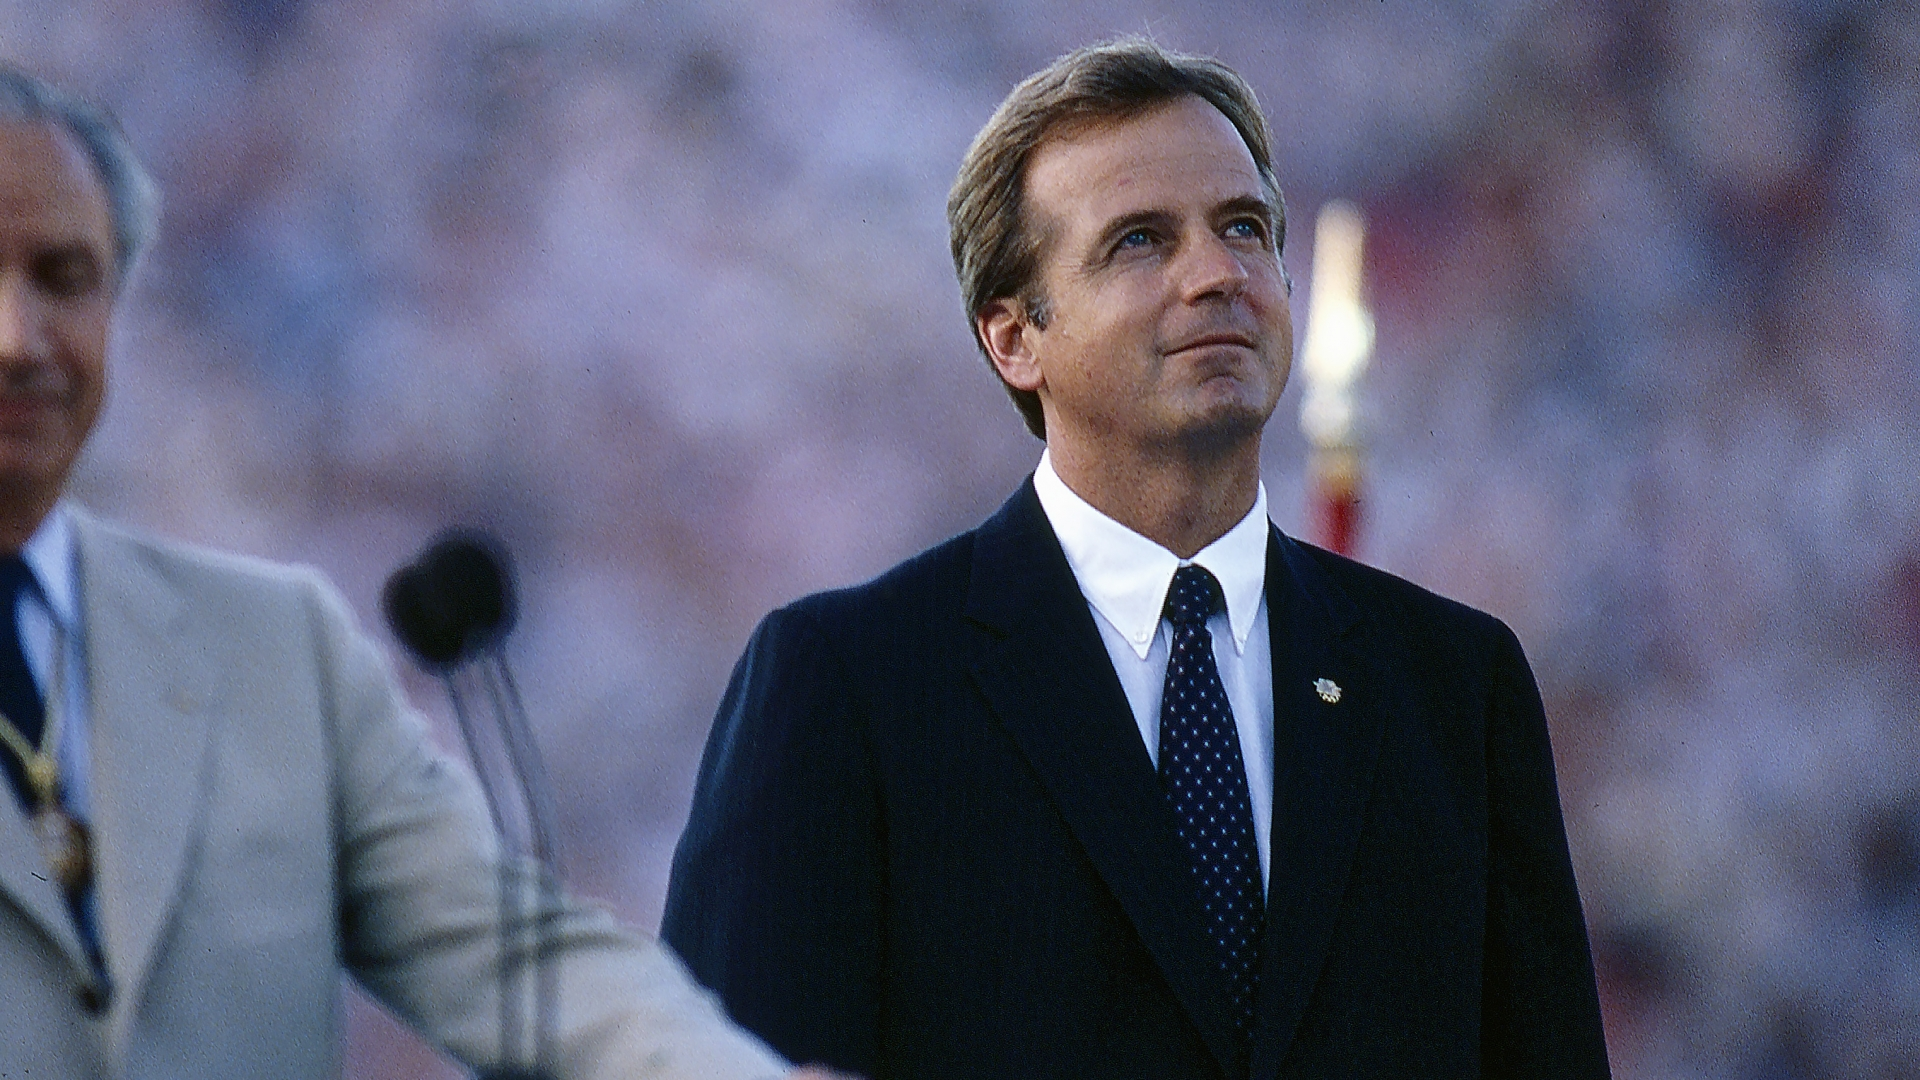 Peter Ueberroth at the opening ceremonies for the 1984 Summer Olympics at Memorial Coliseum. (Credit: ABC/Getty Images)